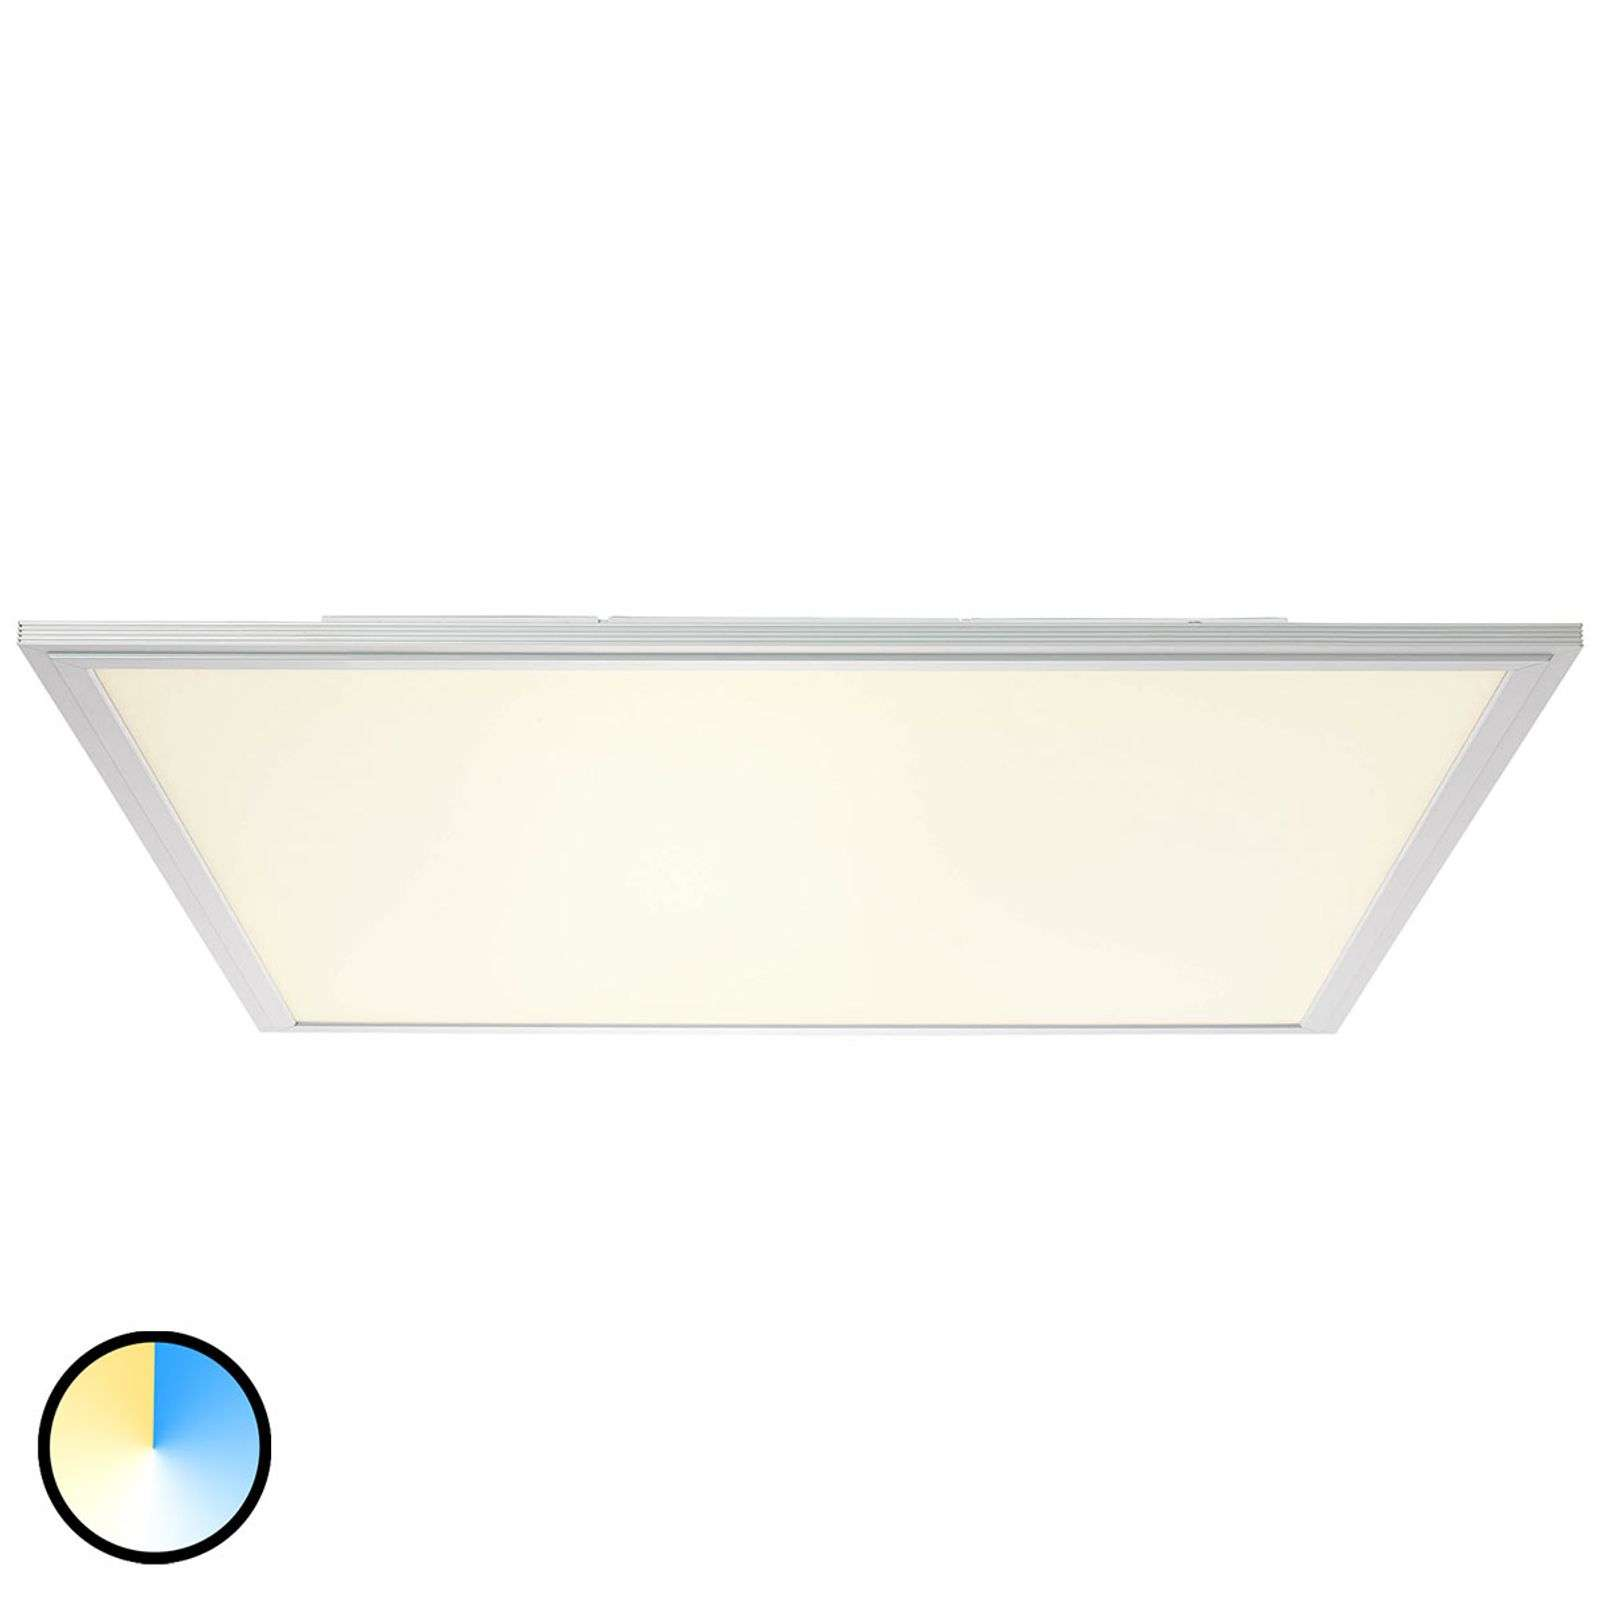 Plafonnier LED Flat brillant WiZ - 60 cm